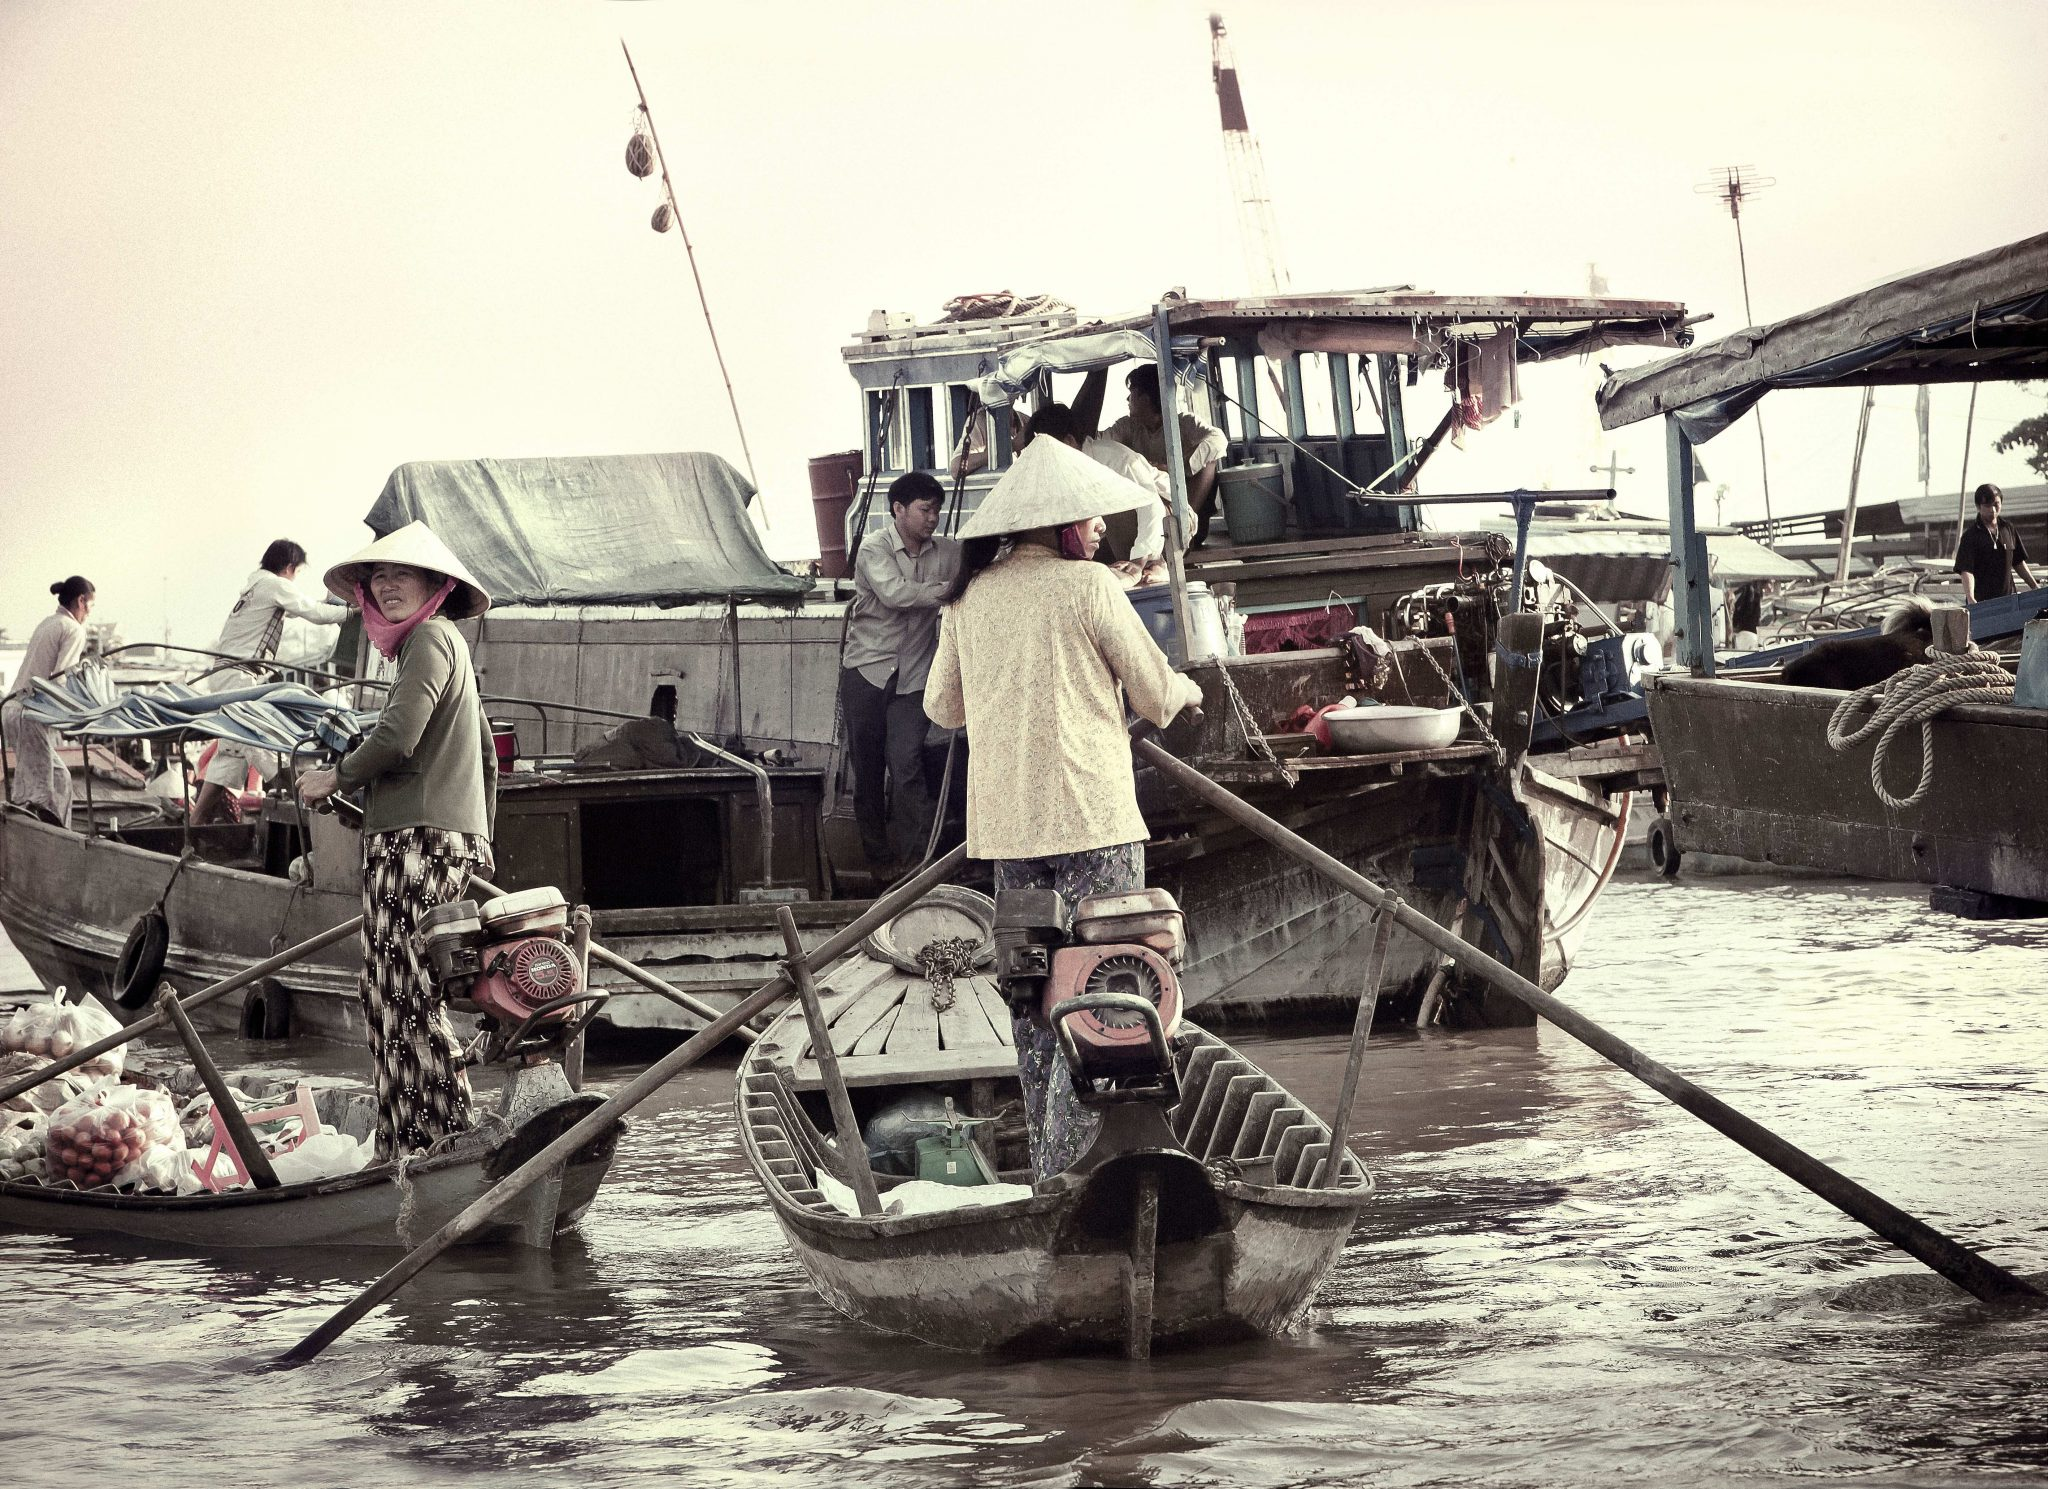 China's Mekong River Threat